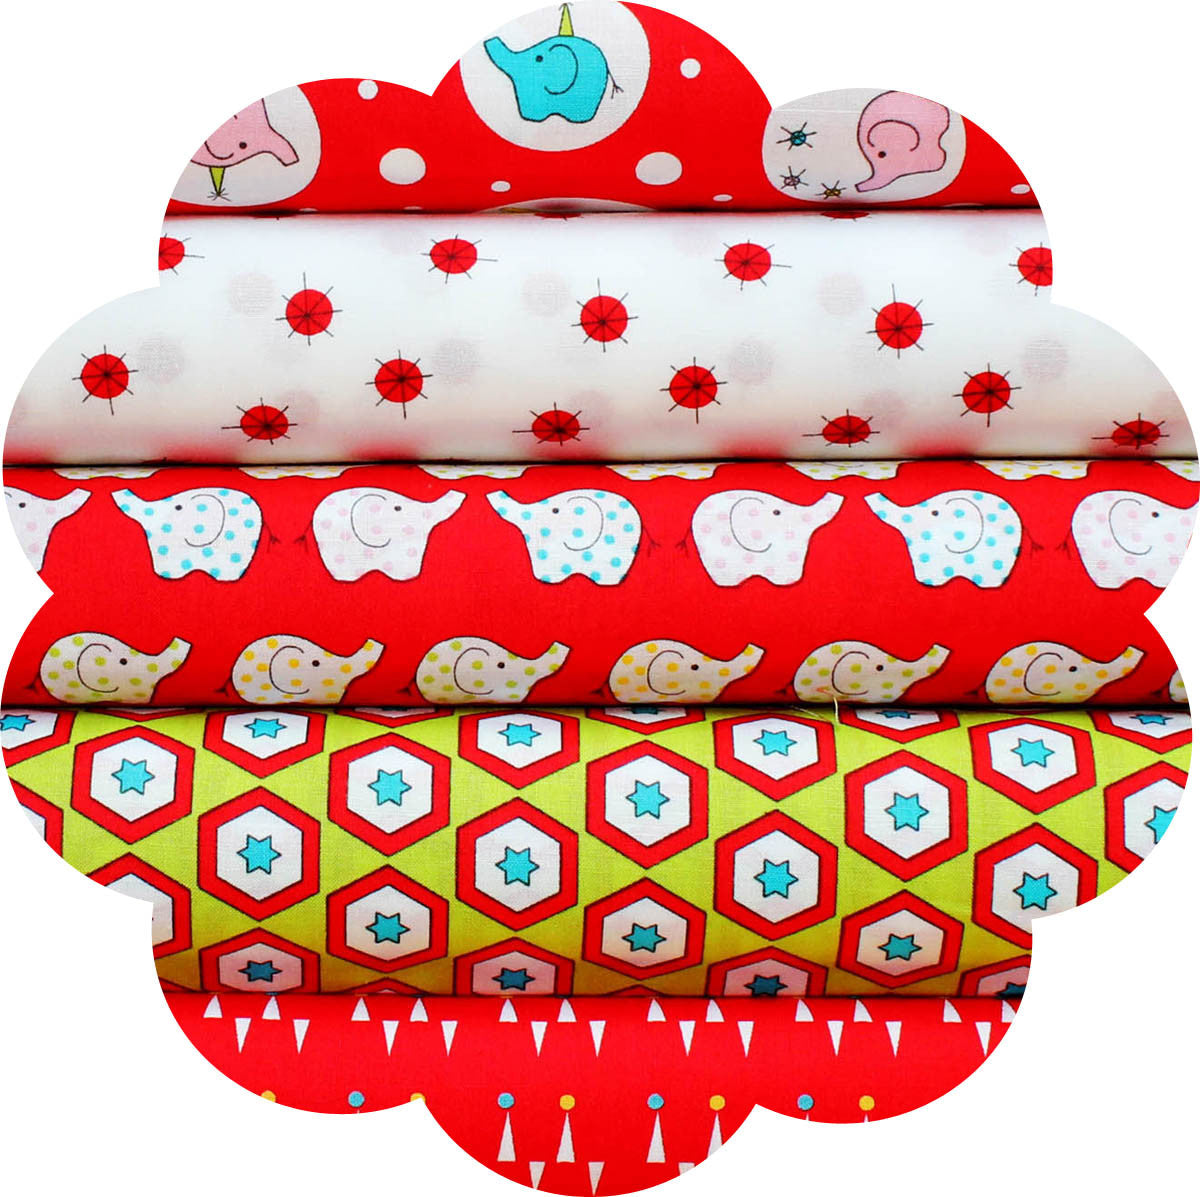 "BACKYARD CIRCUS RED - 20 Charm Squares 5"" x 5"""